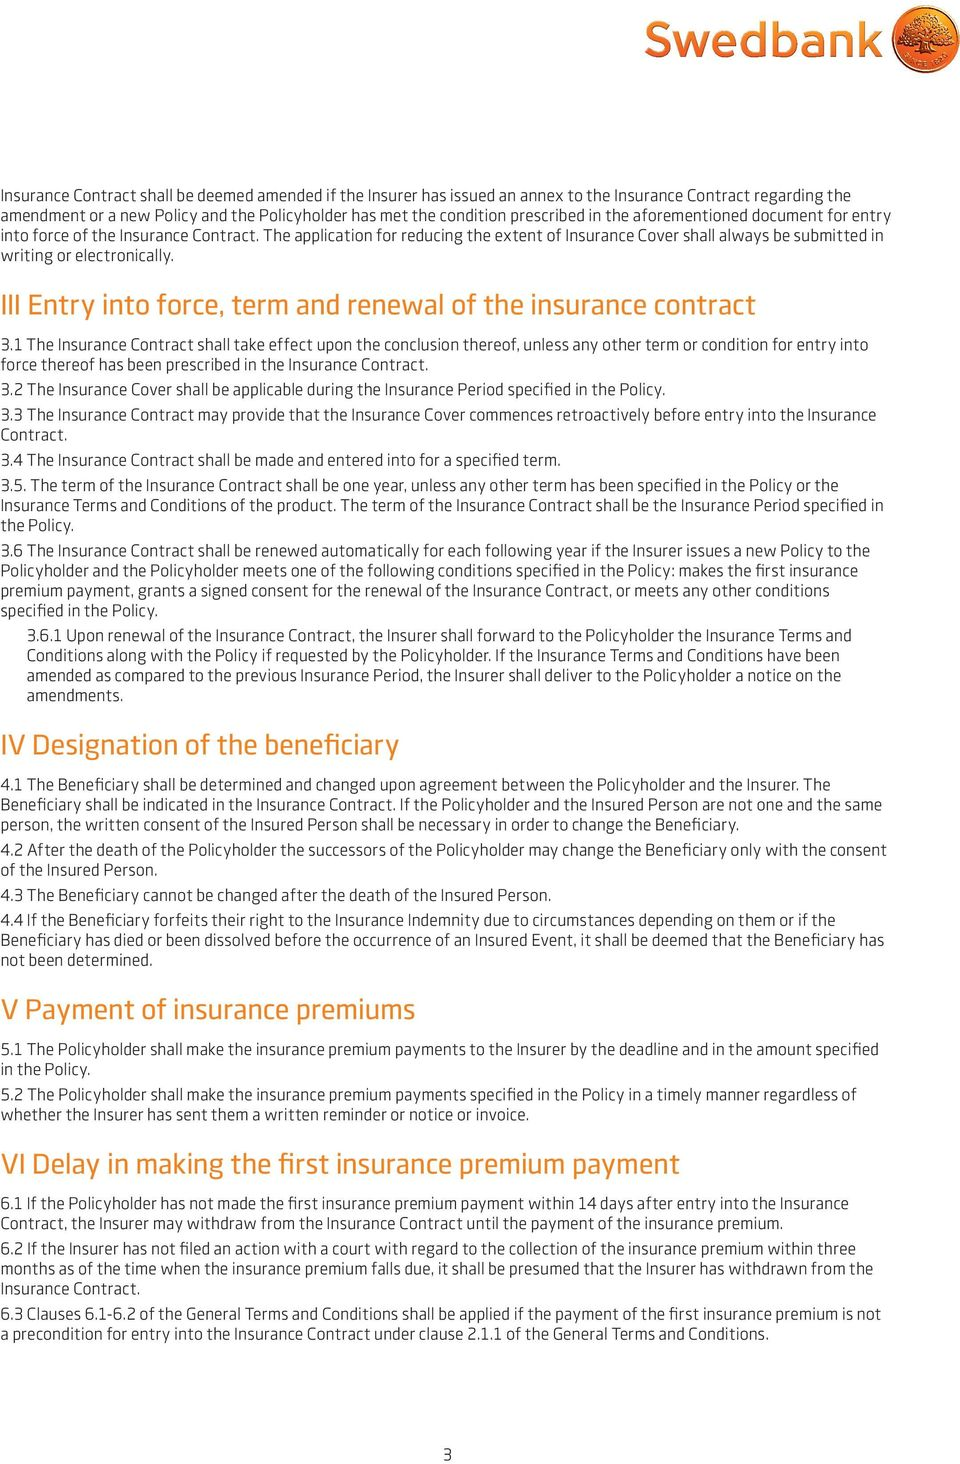 III Entry into force, term and renewal of the insurance contract 3.